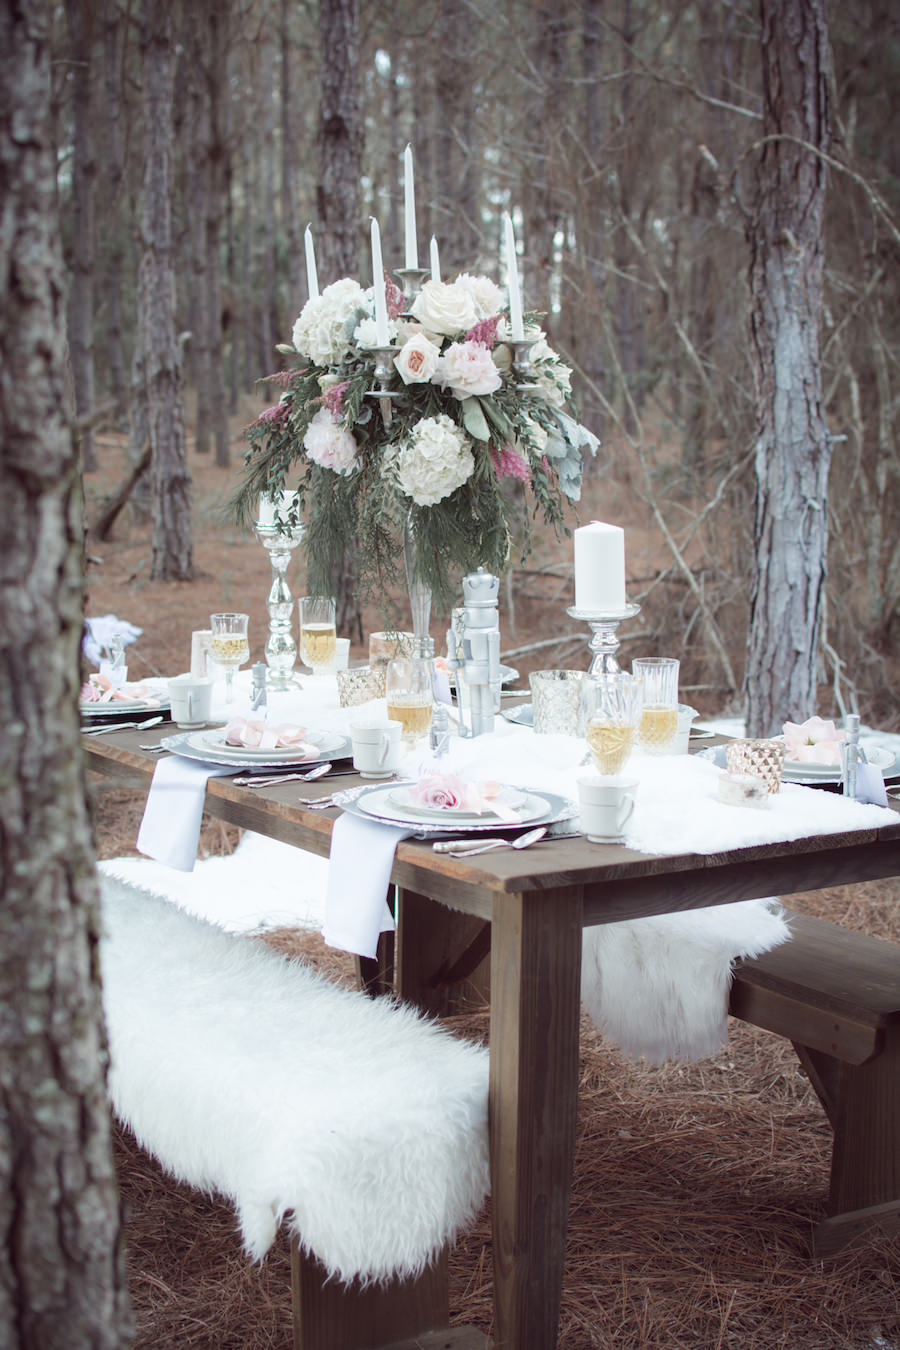 Outdoor Winter Inspired Wedding Reception with Faux Fur and Wooden Farm Tables with Tall Blush Pink and Ivory Floral Centerpieces | Ever After Vintage Weddings Tampa Bay Wedding Rental Company and Event Stylist